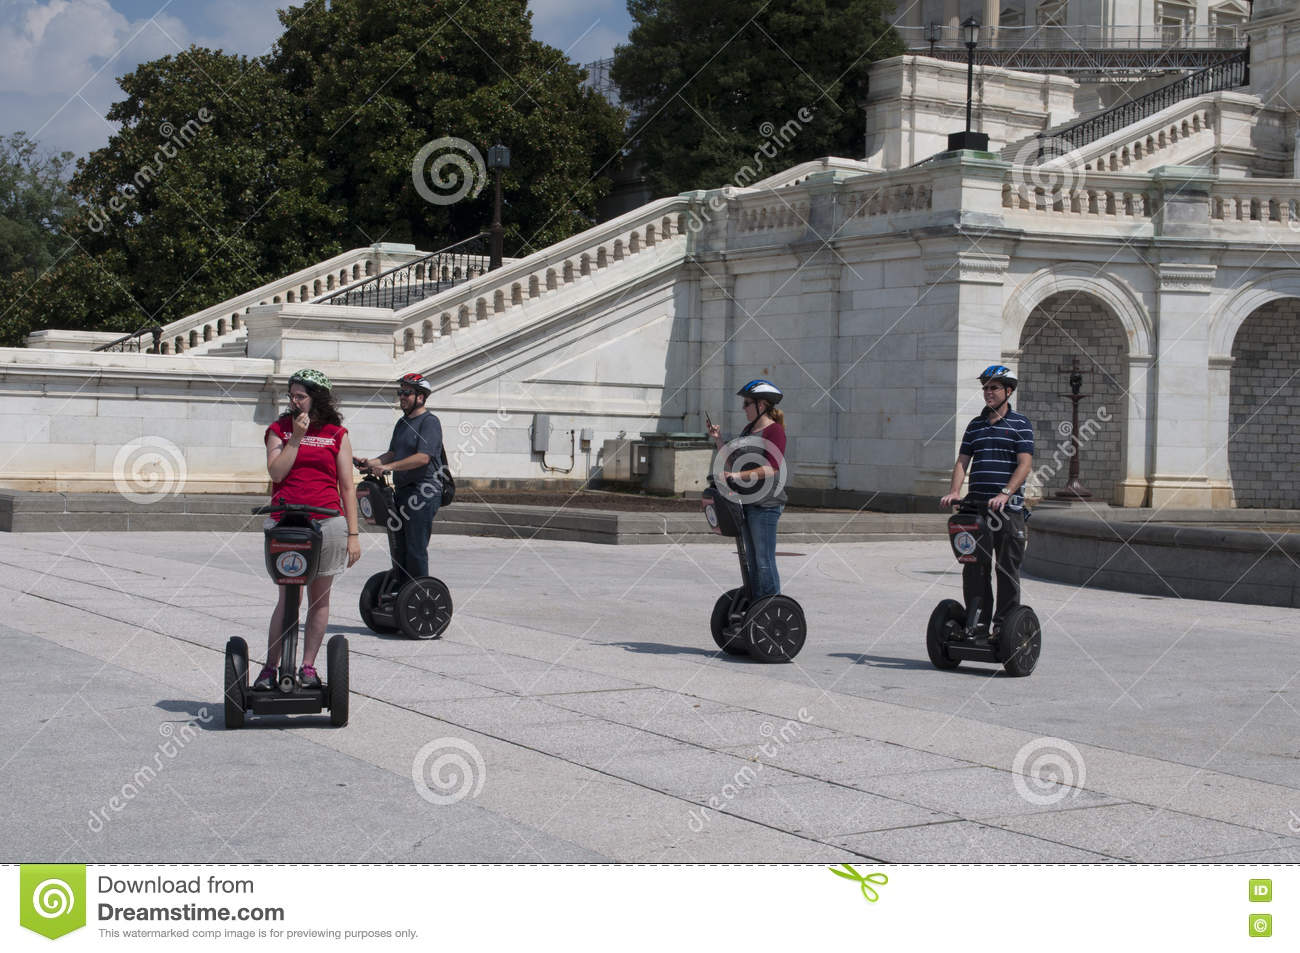 Γύρος του Washington DC Segway